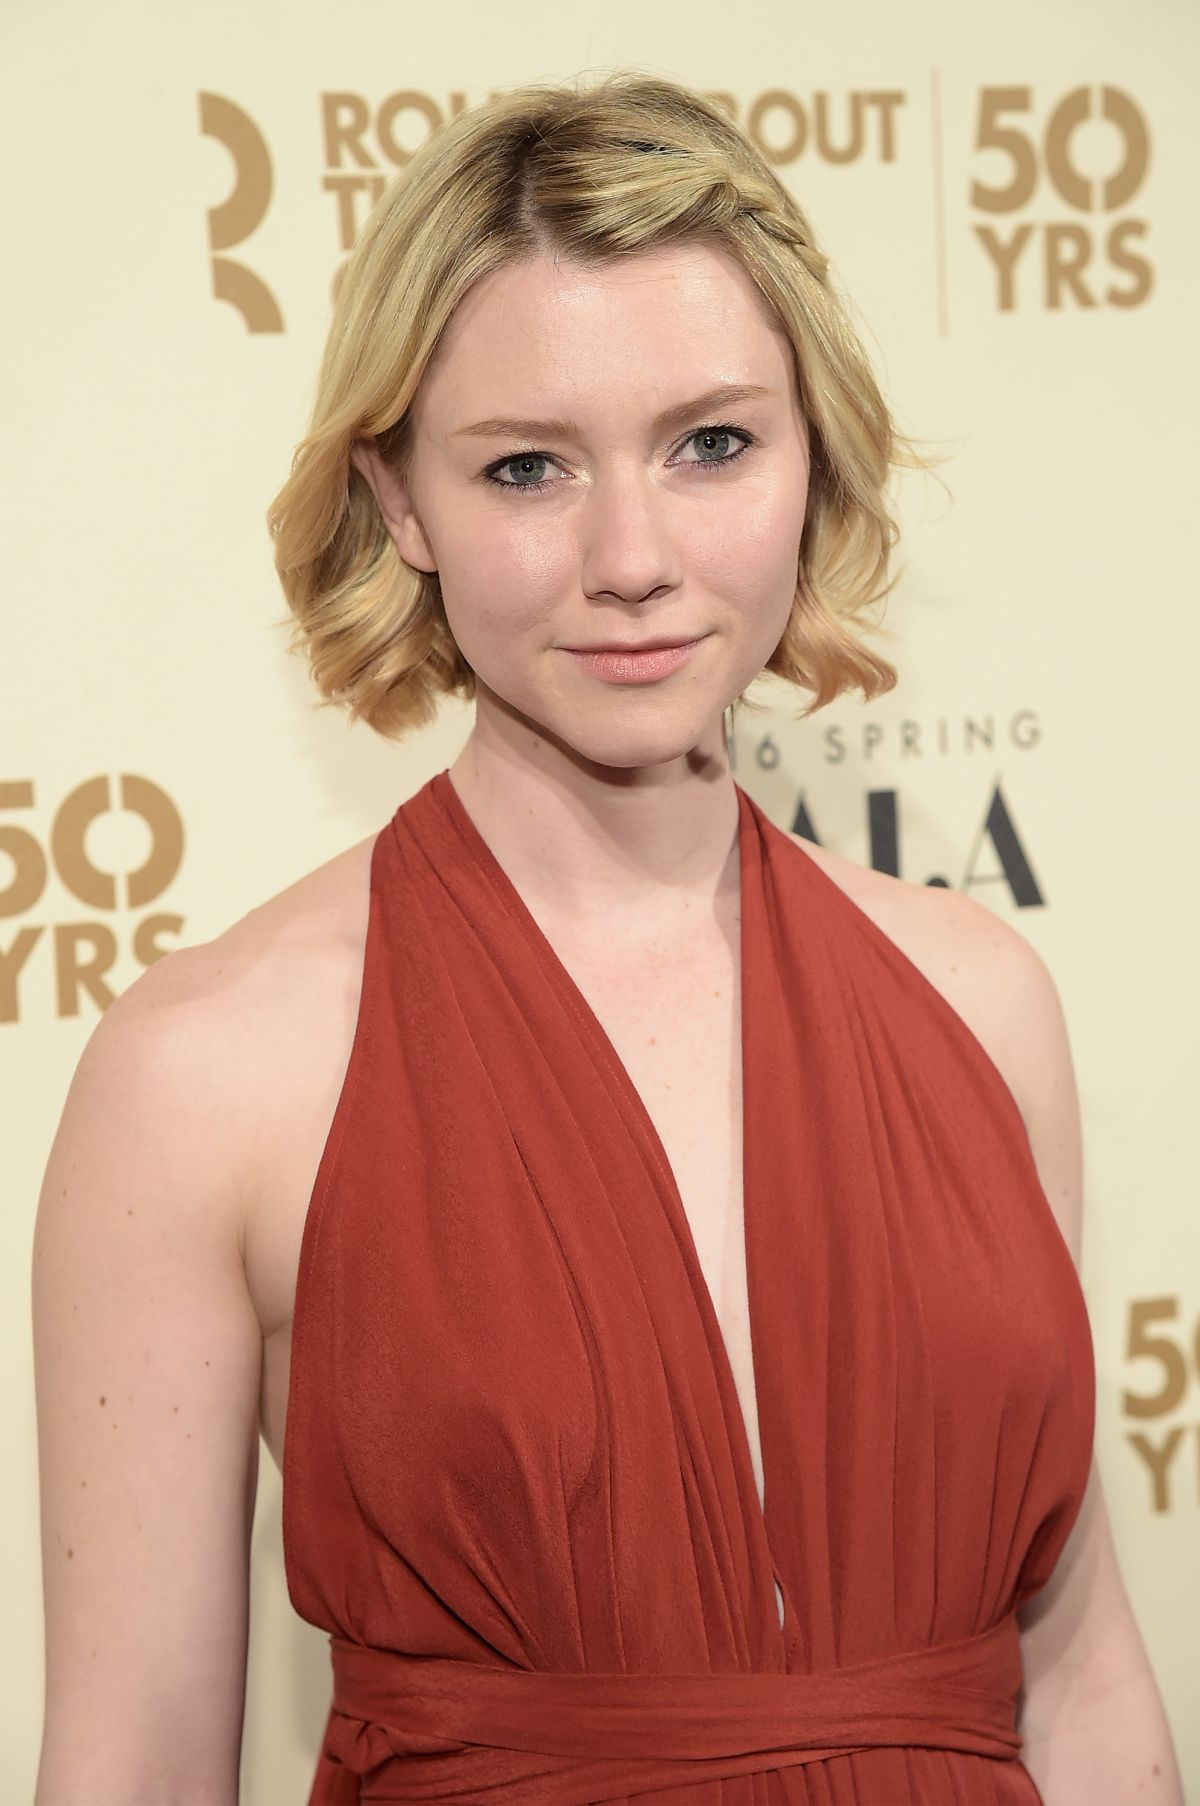 VALORIE CURRY at 2016 Roundabout Theatre Company Spring Gala Celebrating 50 Years in New York 02/29/2016